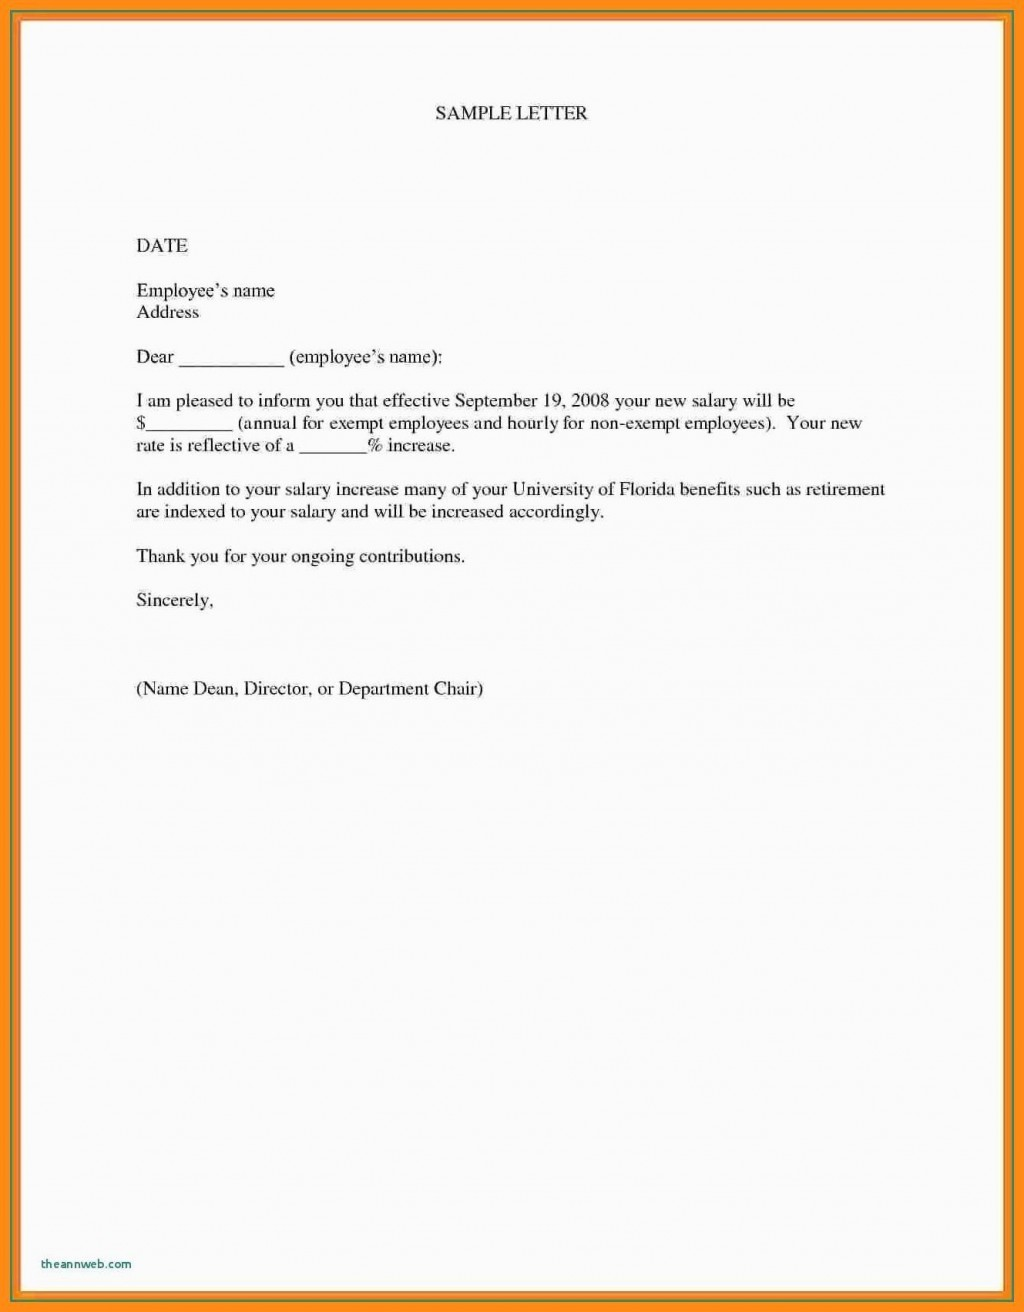 000 Marvelou Salary Increase Letter Template Design  From Employer To Employee Australia No ForLarge